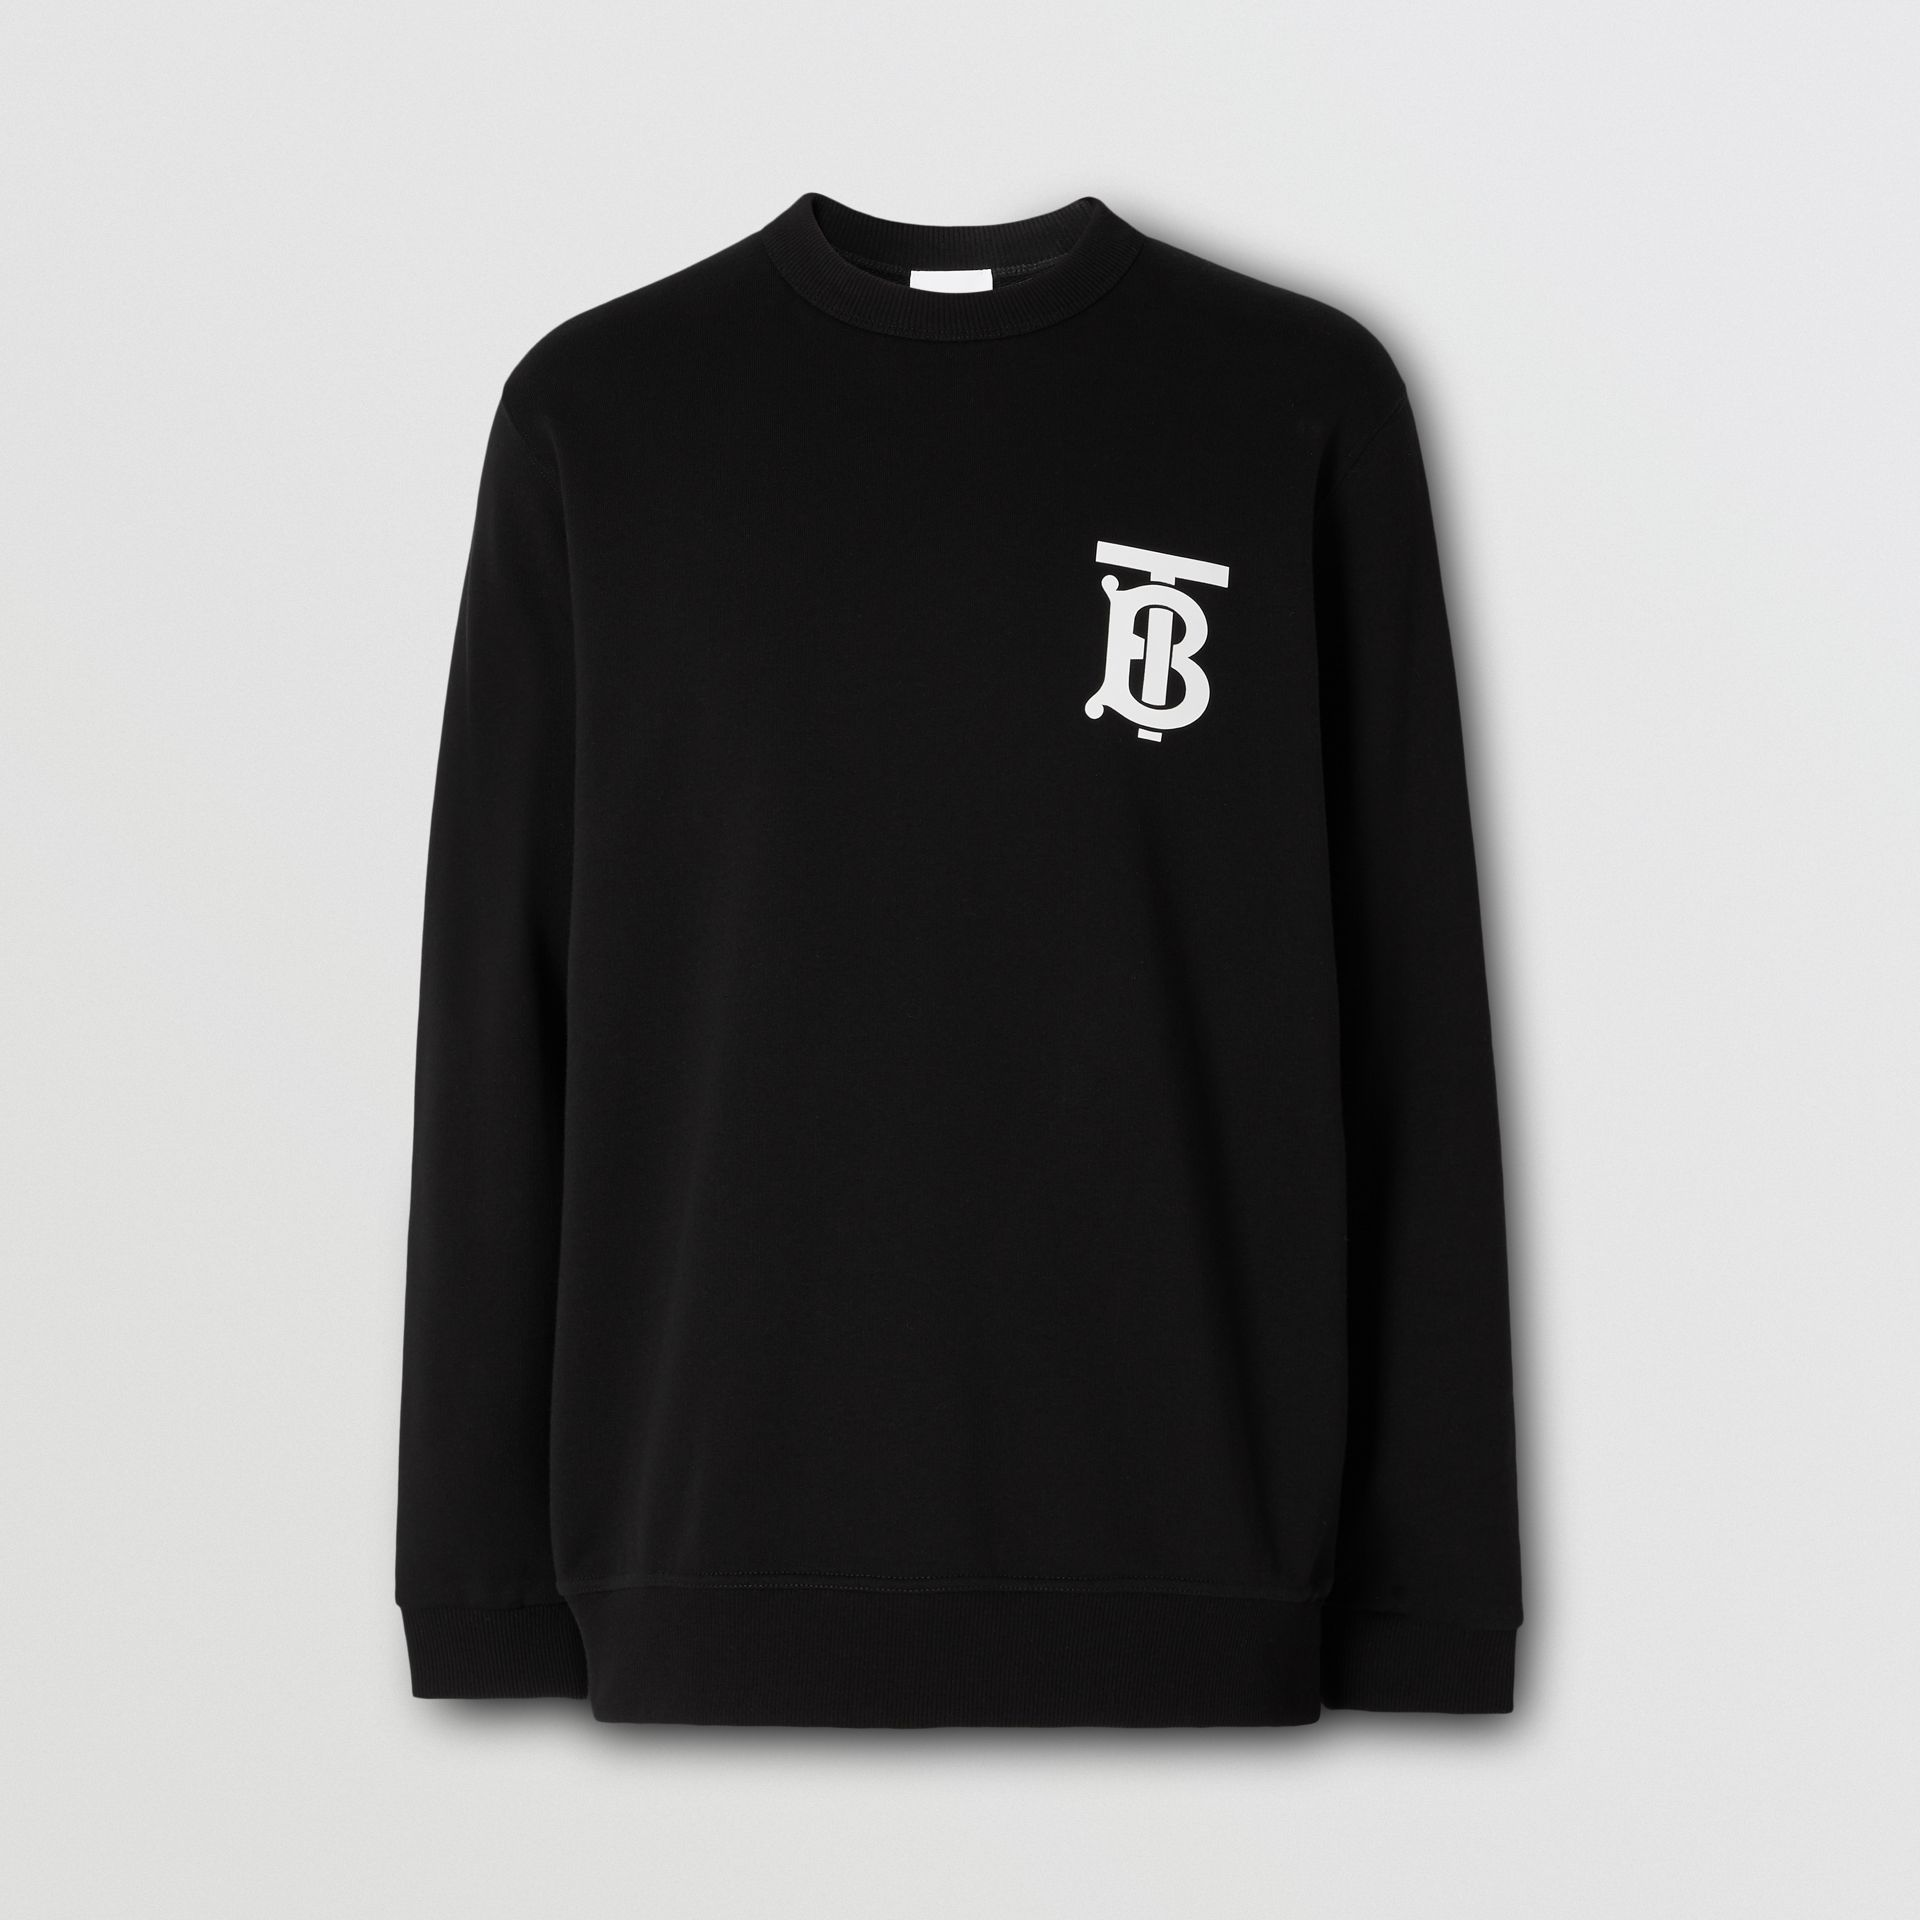 Monogram Motif Cotton Sweatshirt in Black - Men | Burberry - gallery image 3